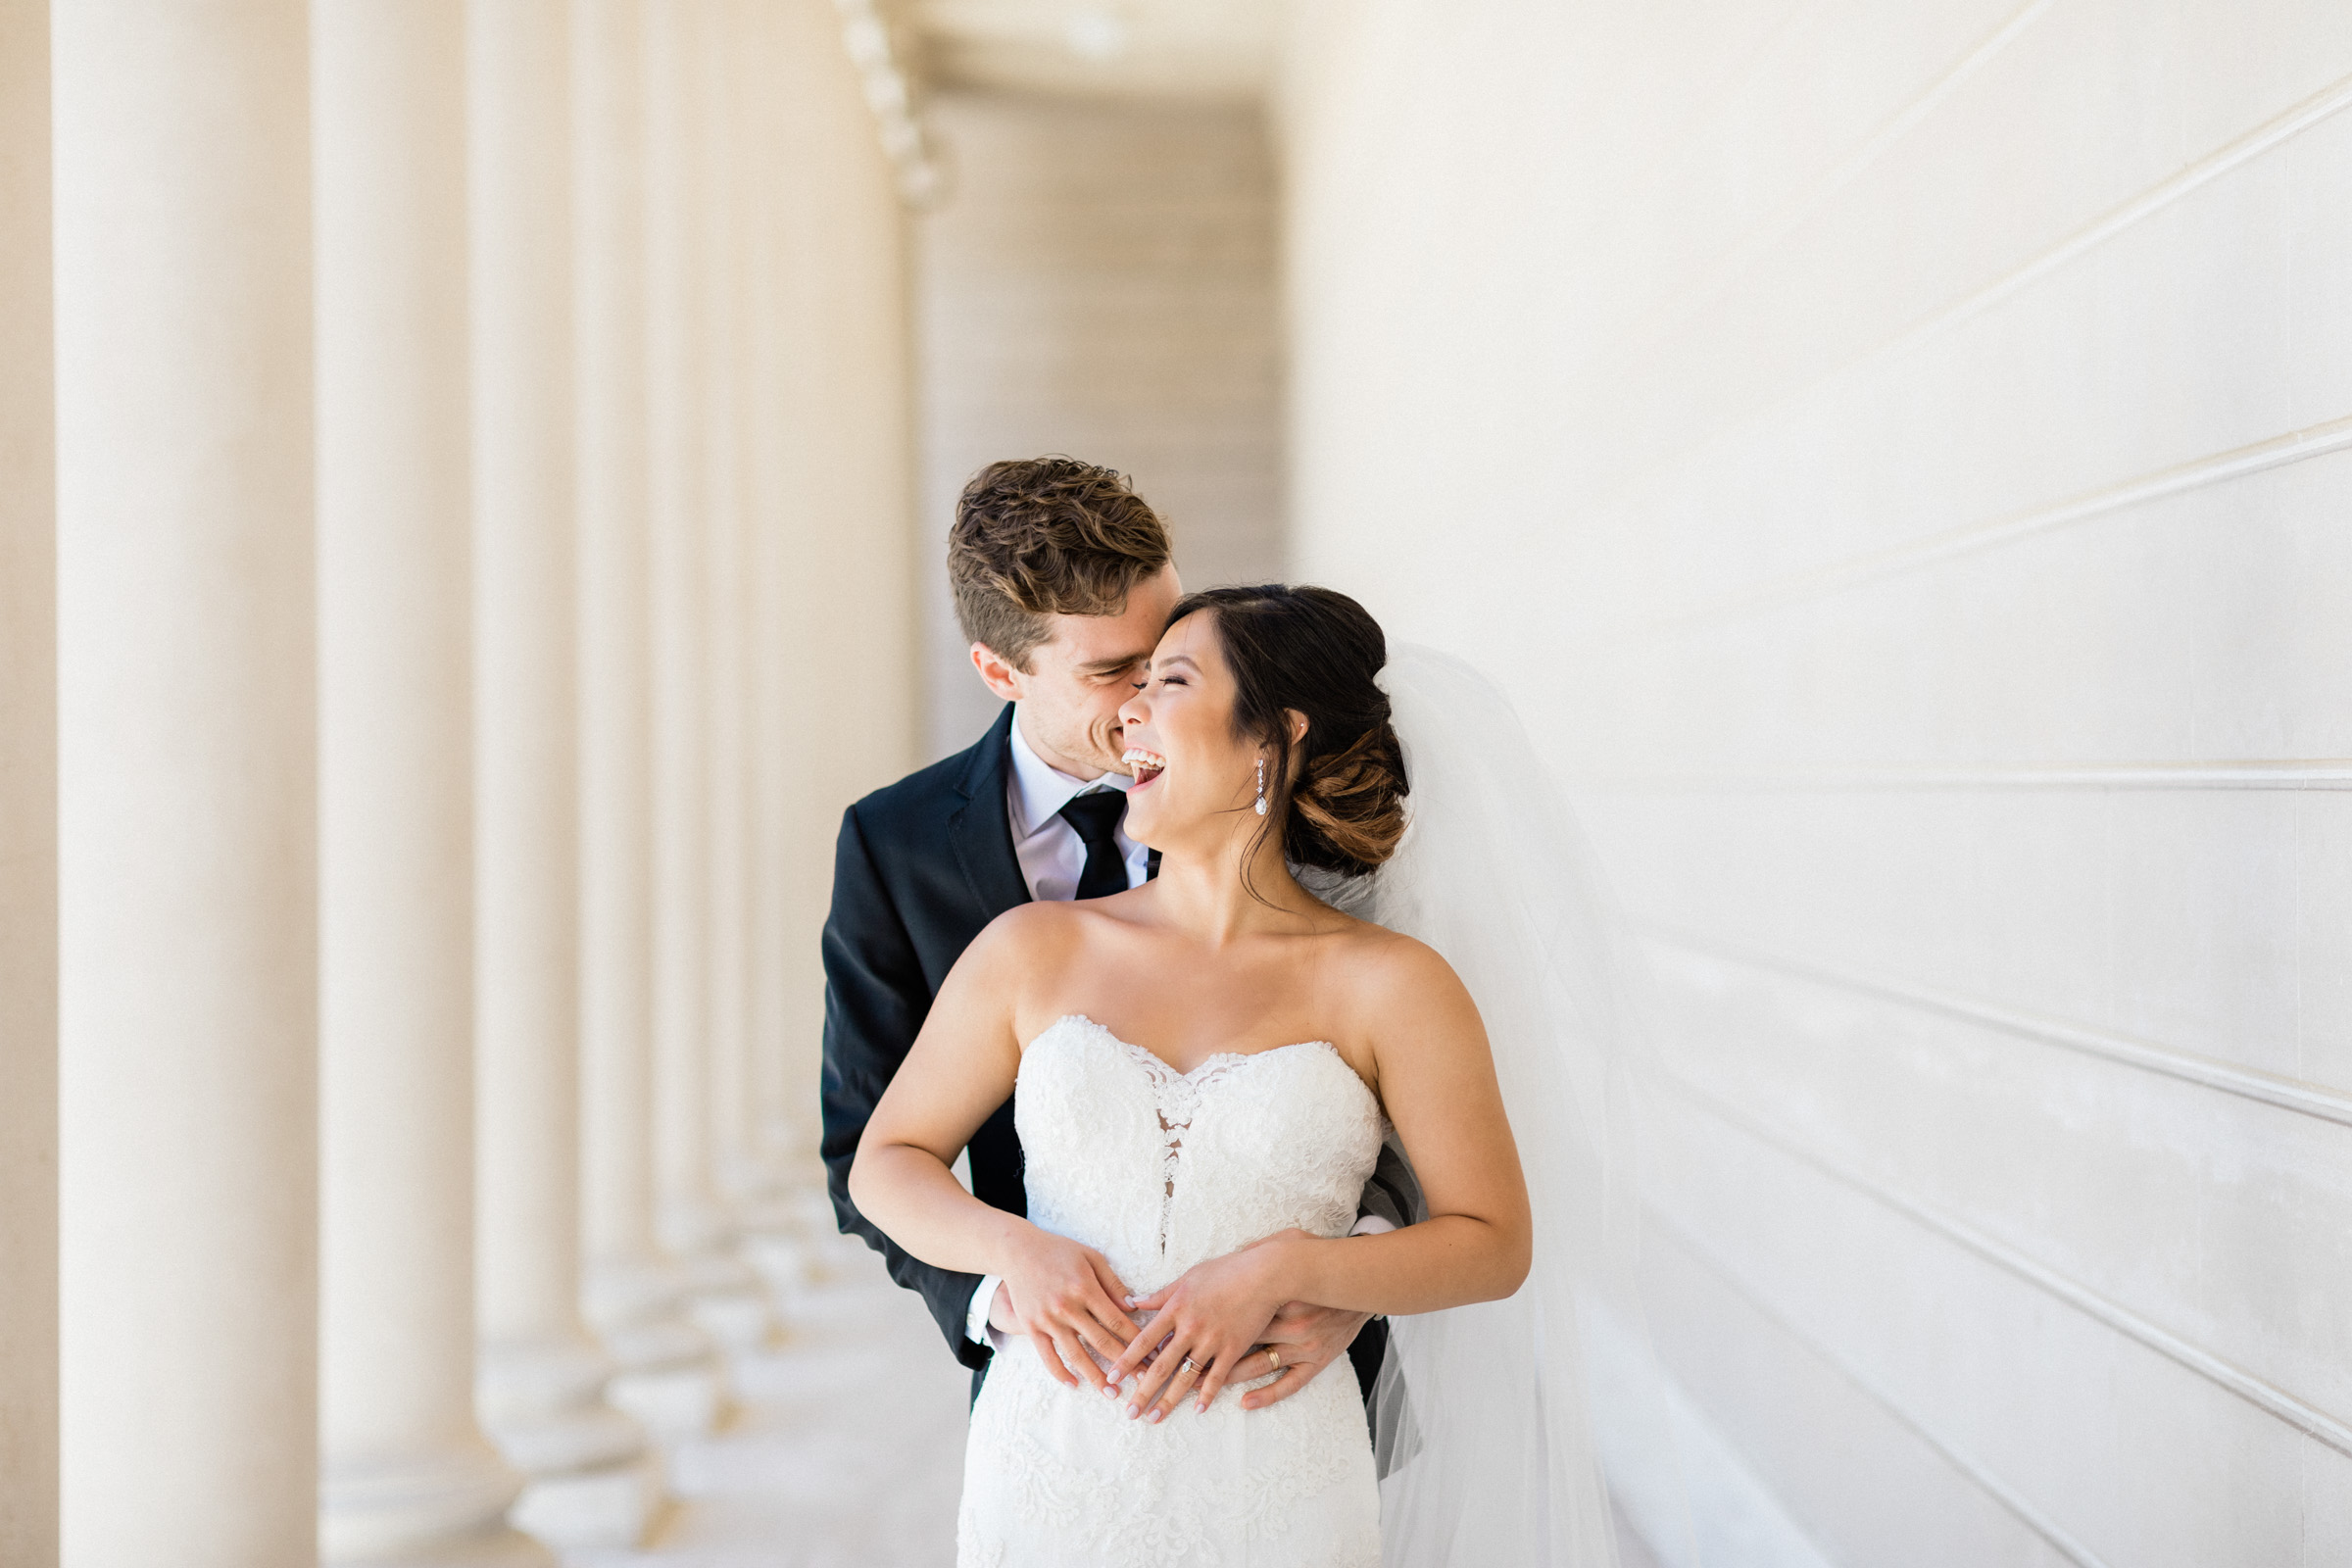 MELINDA & STEVEN | WEDDING